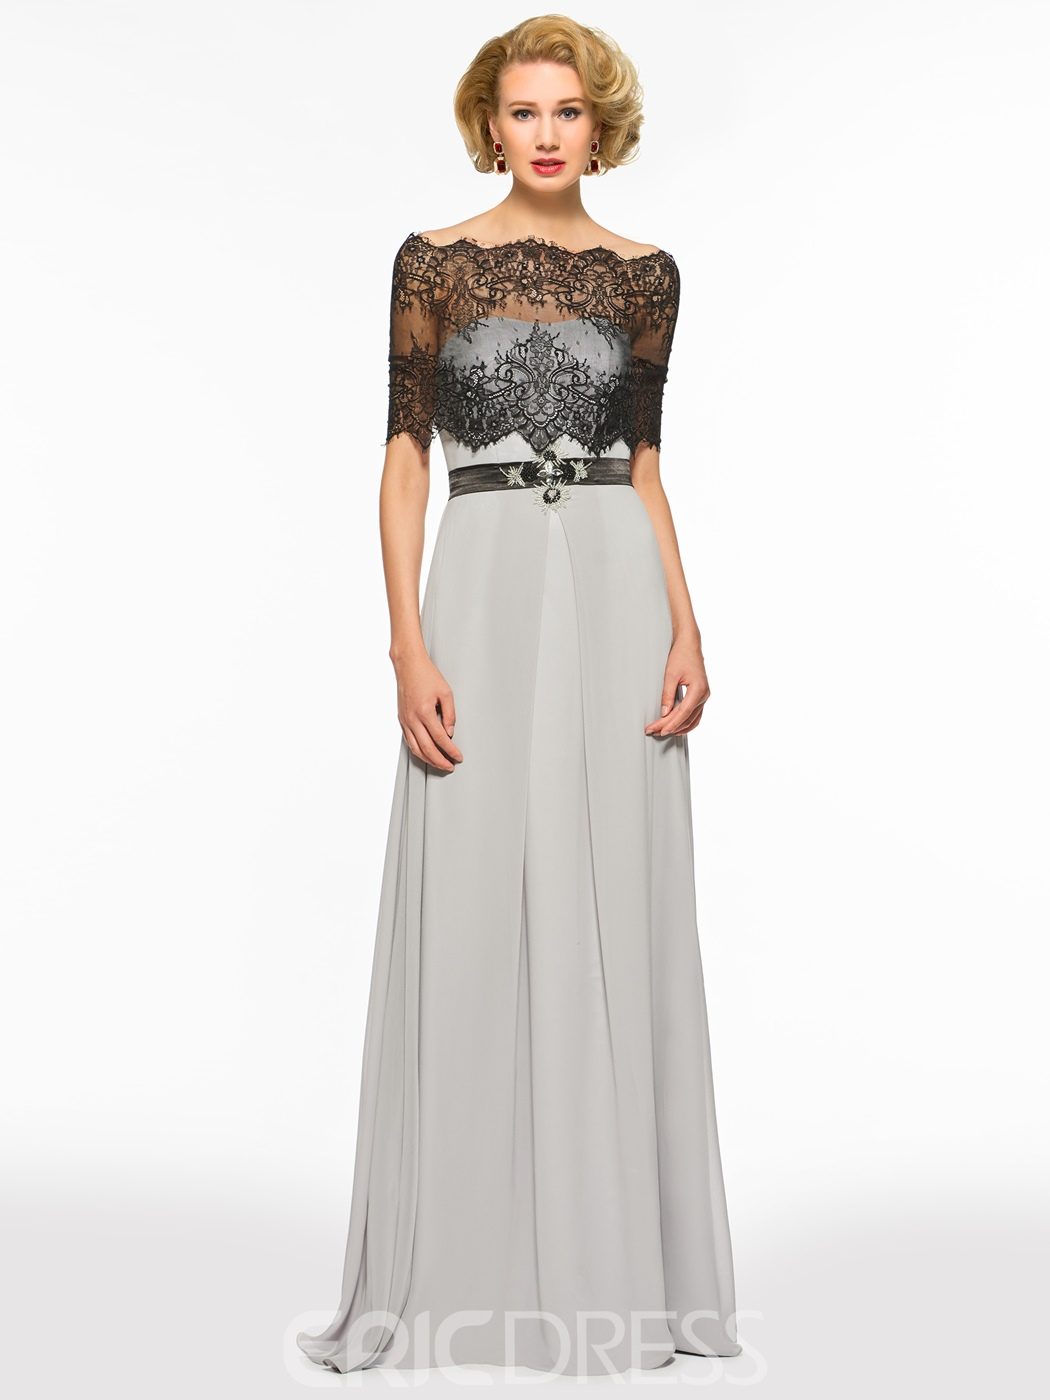 5850a6fd092 Ericdress Off The Shoulder Half Sleeves A Line Lace Mother Of The ...